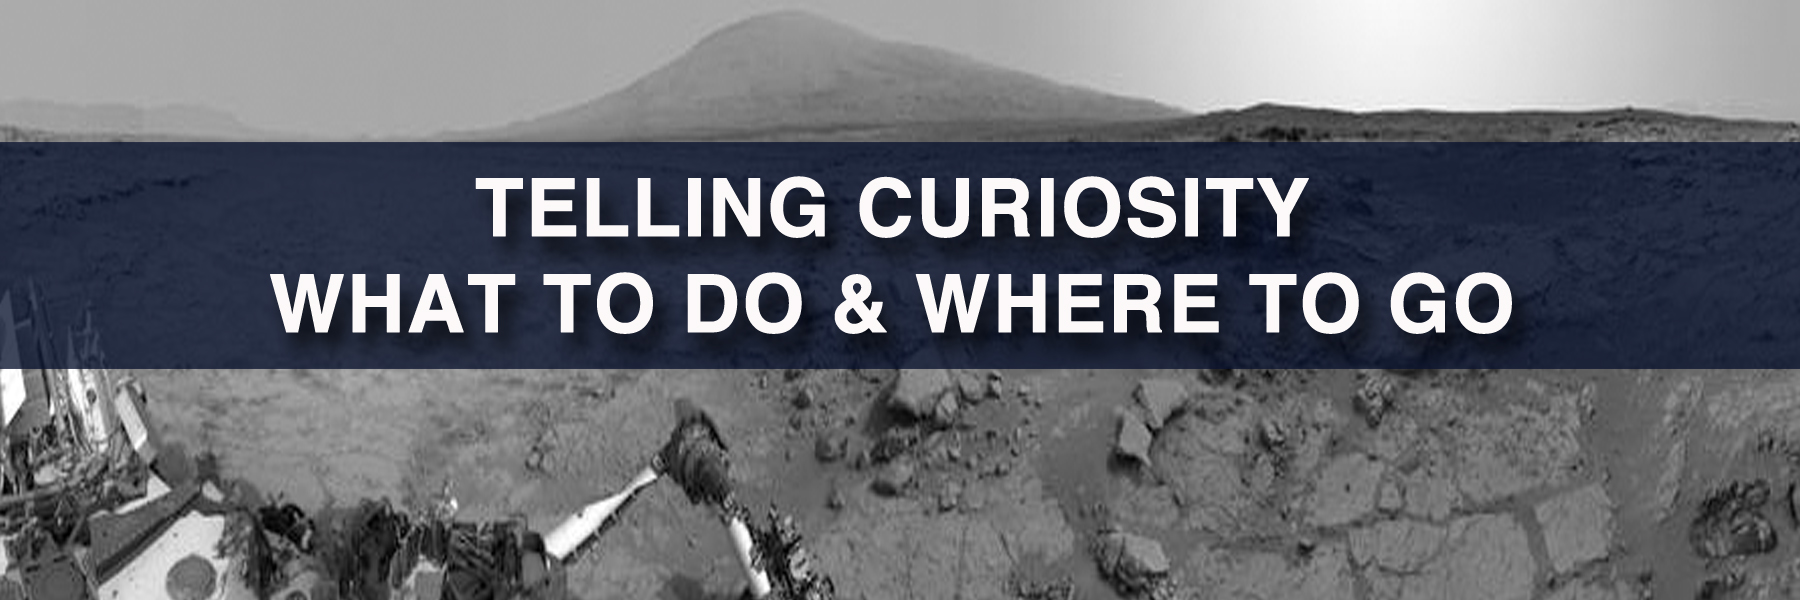 TELLING CURIOSITY WHERE TO GO AND WHAT TO DO